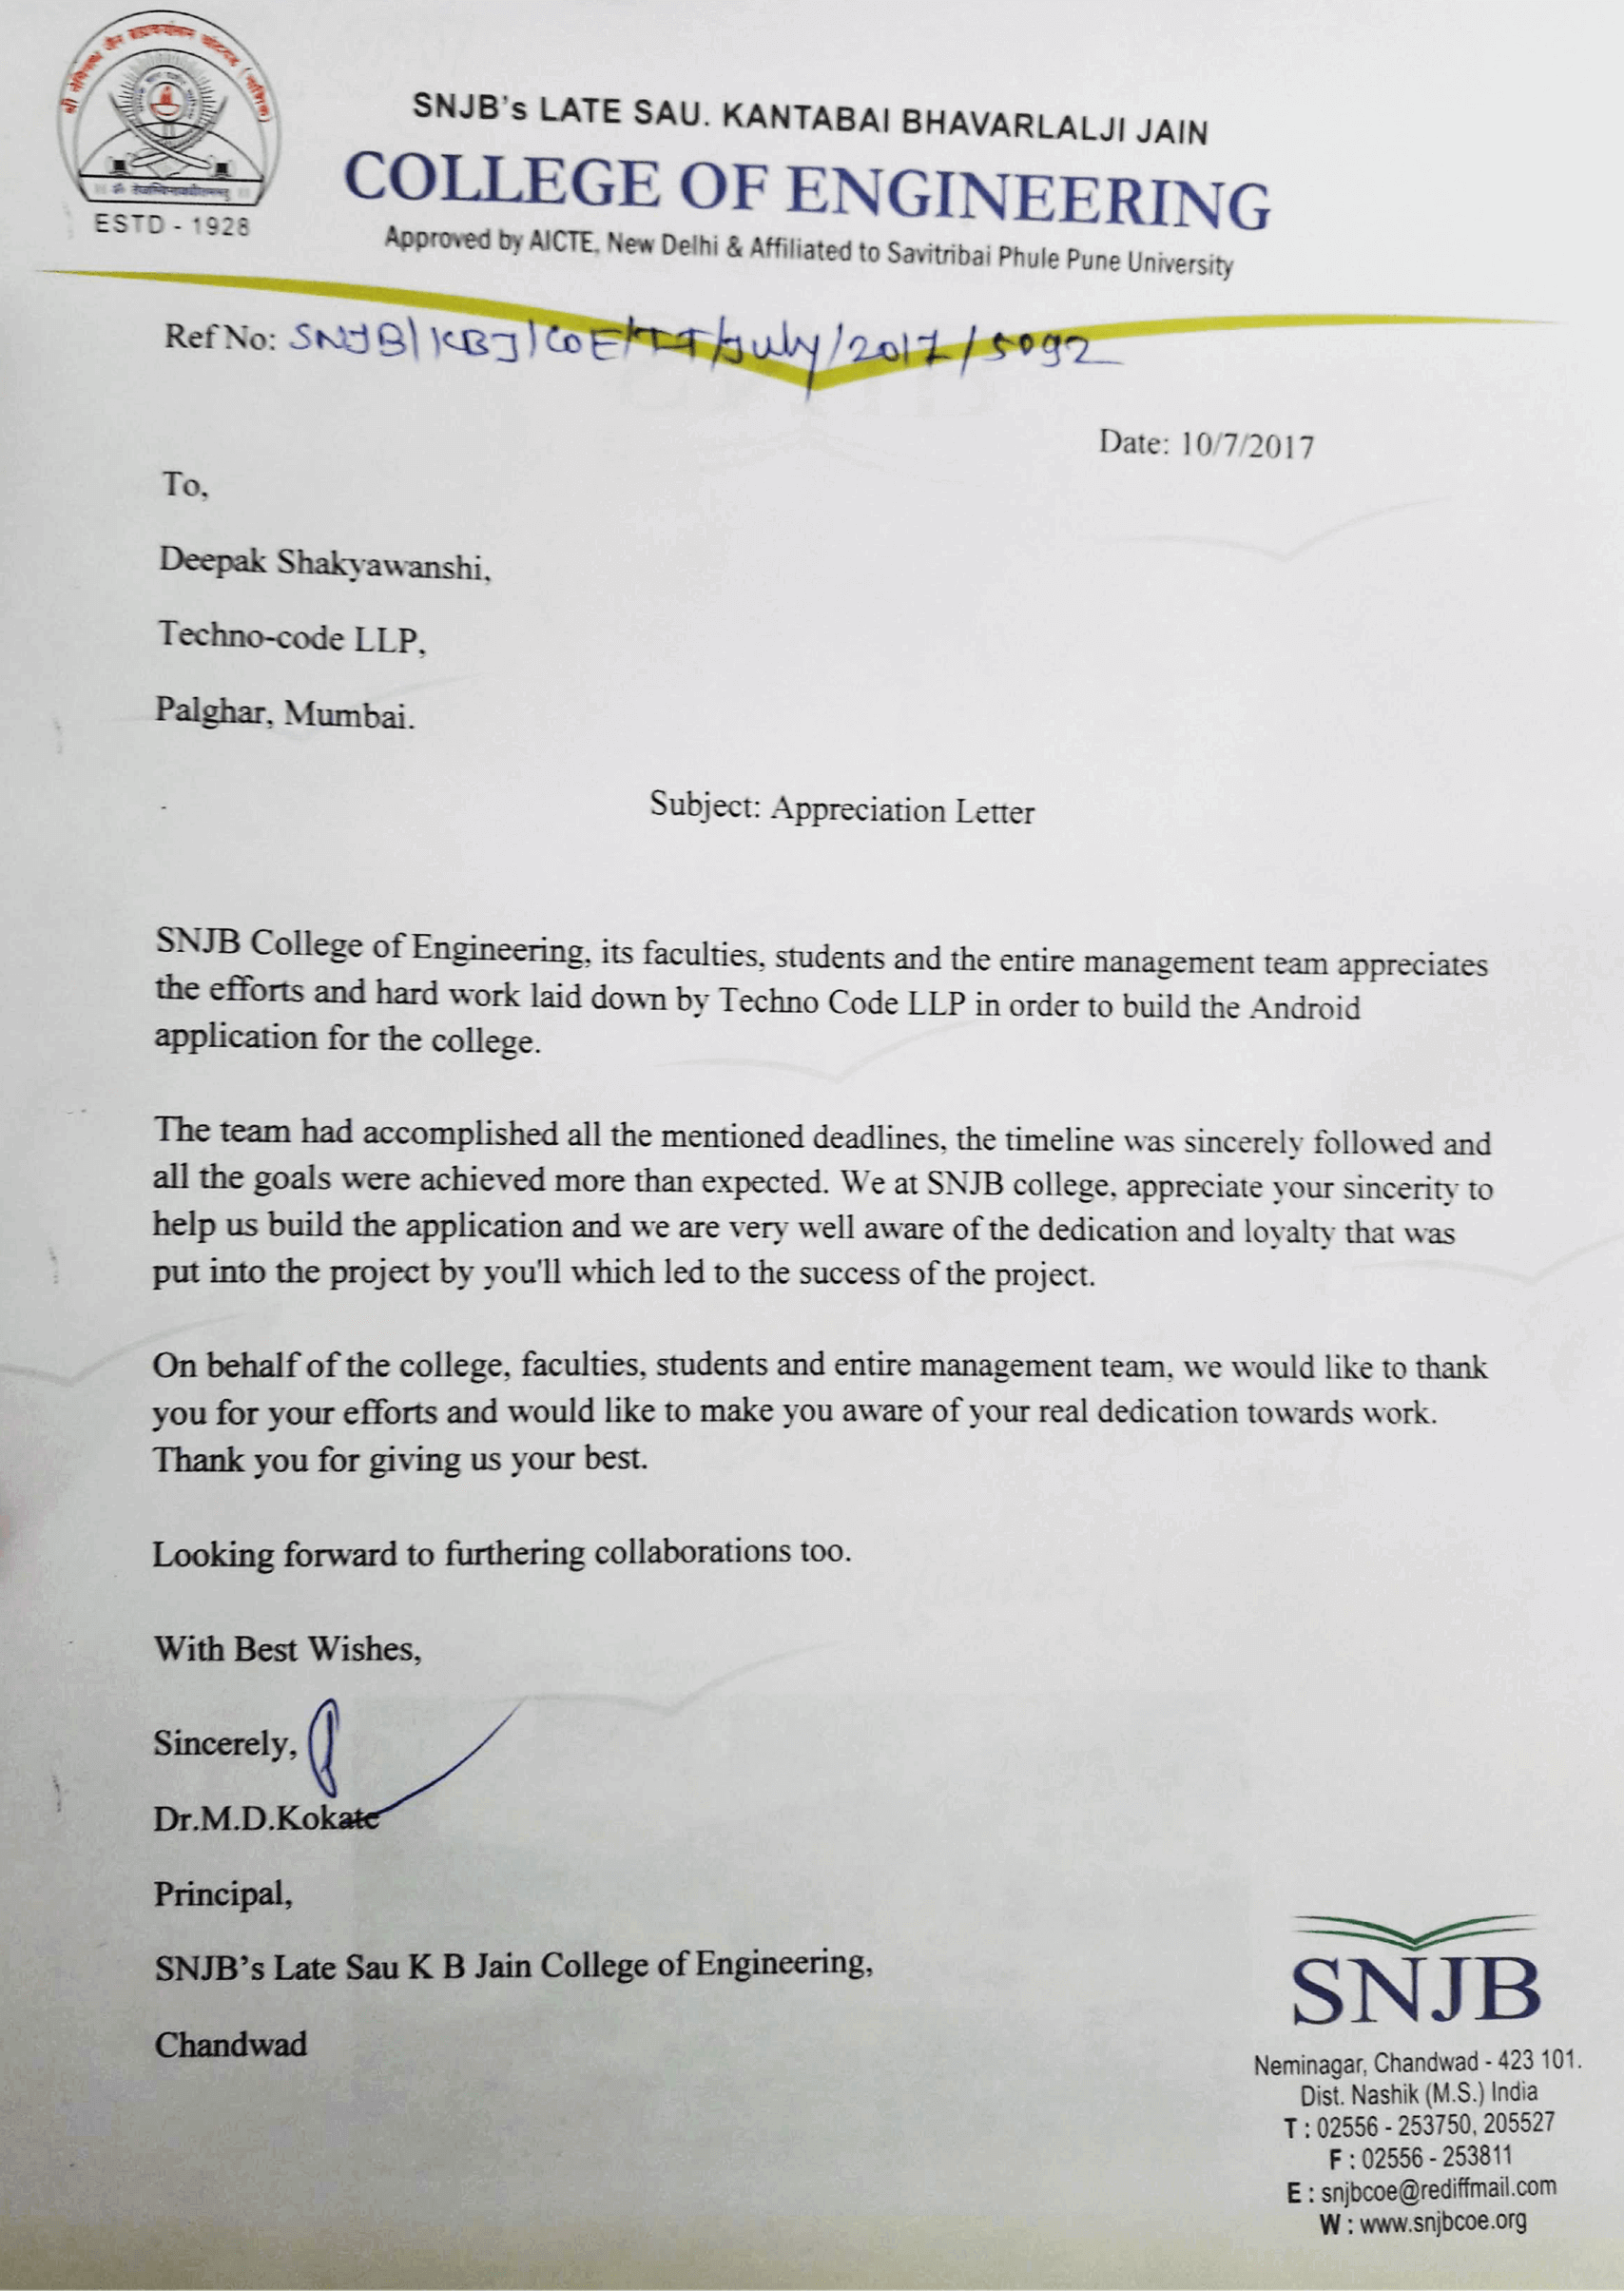 Appreciation Letter from SNJB